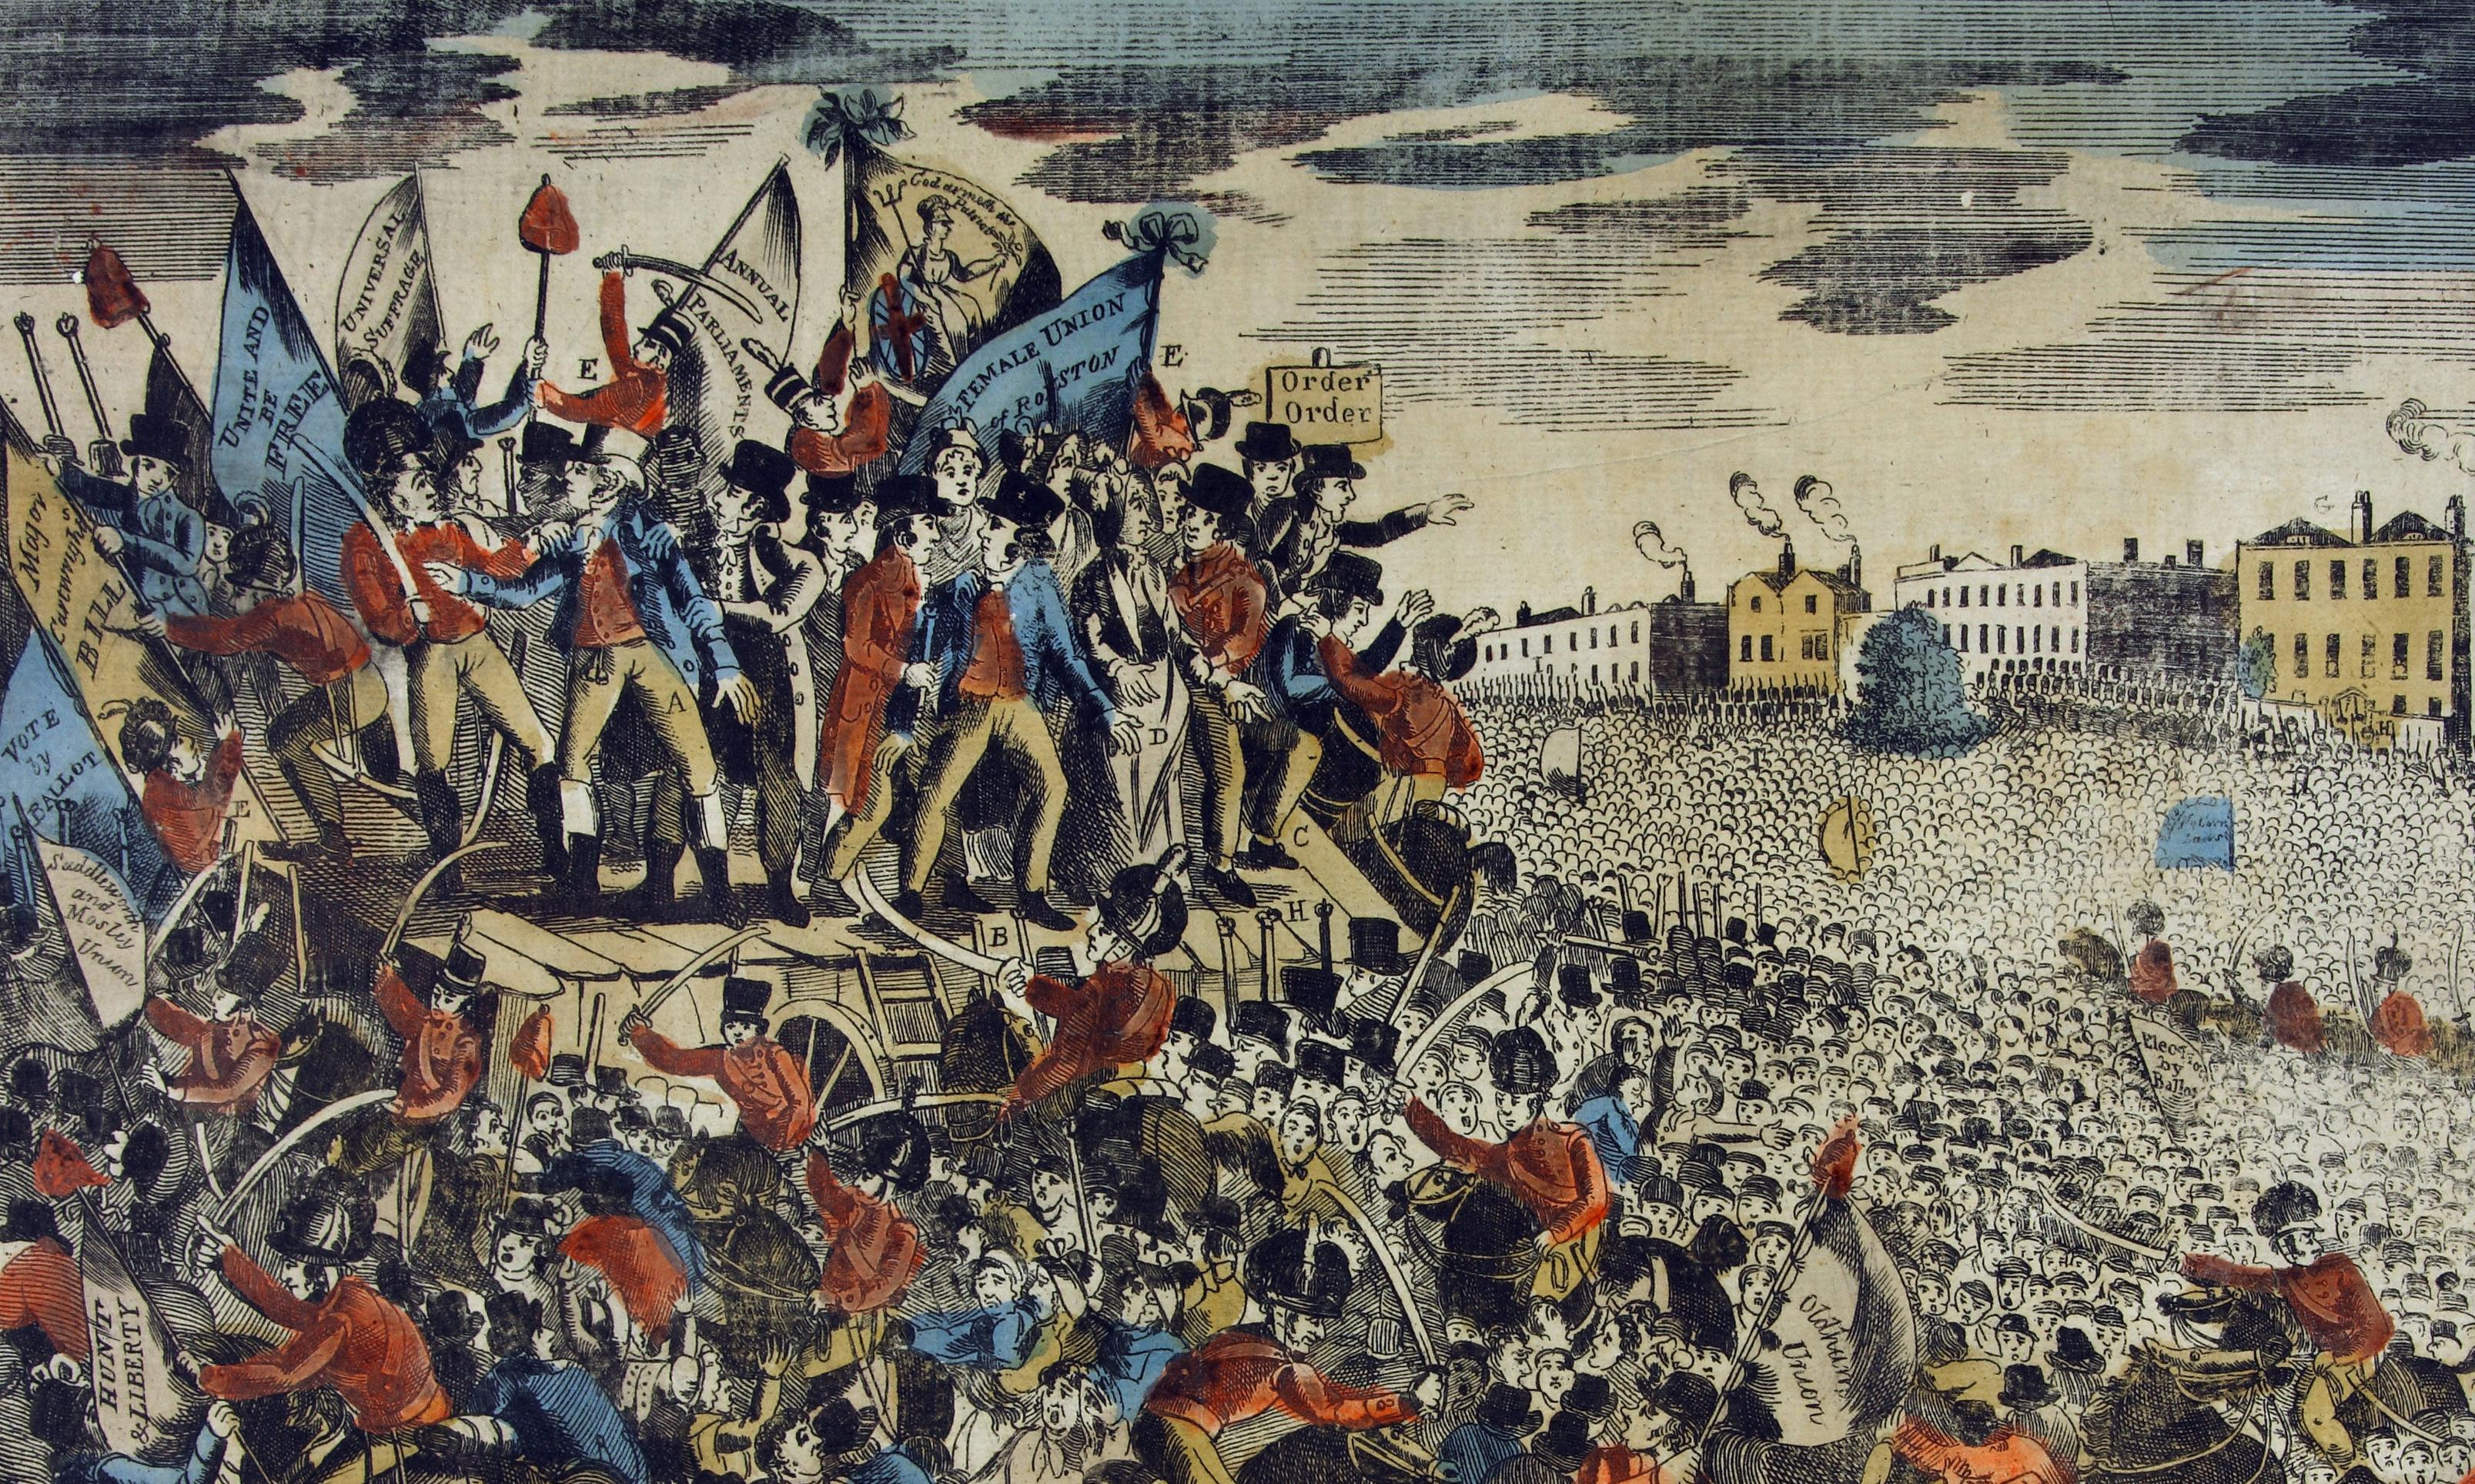 'Several lives lost': note reveals early details of Peterloo massacre